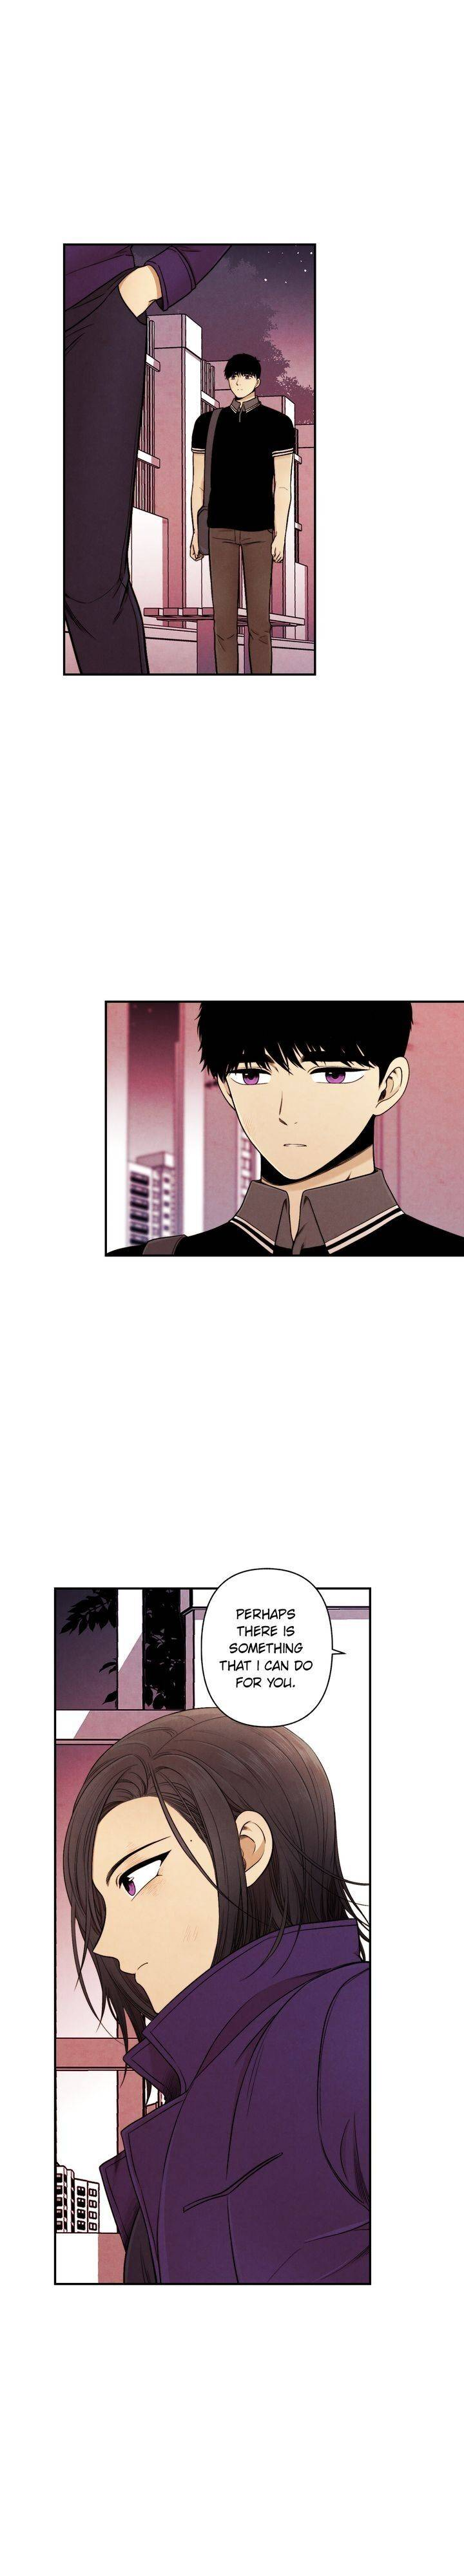 Just Give It To Me - chapter 118 - #2